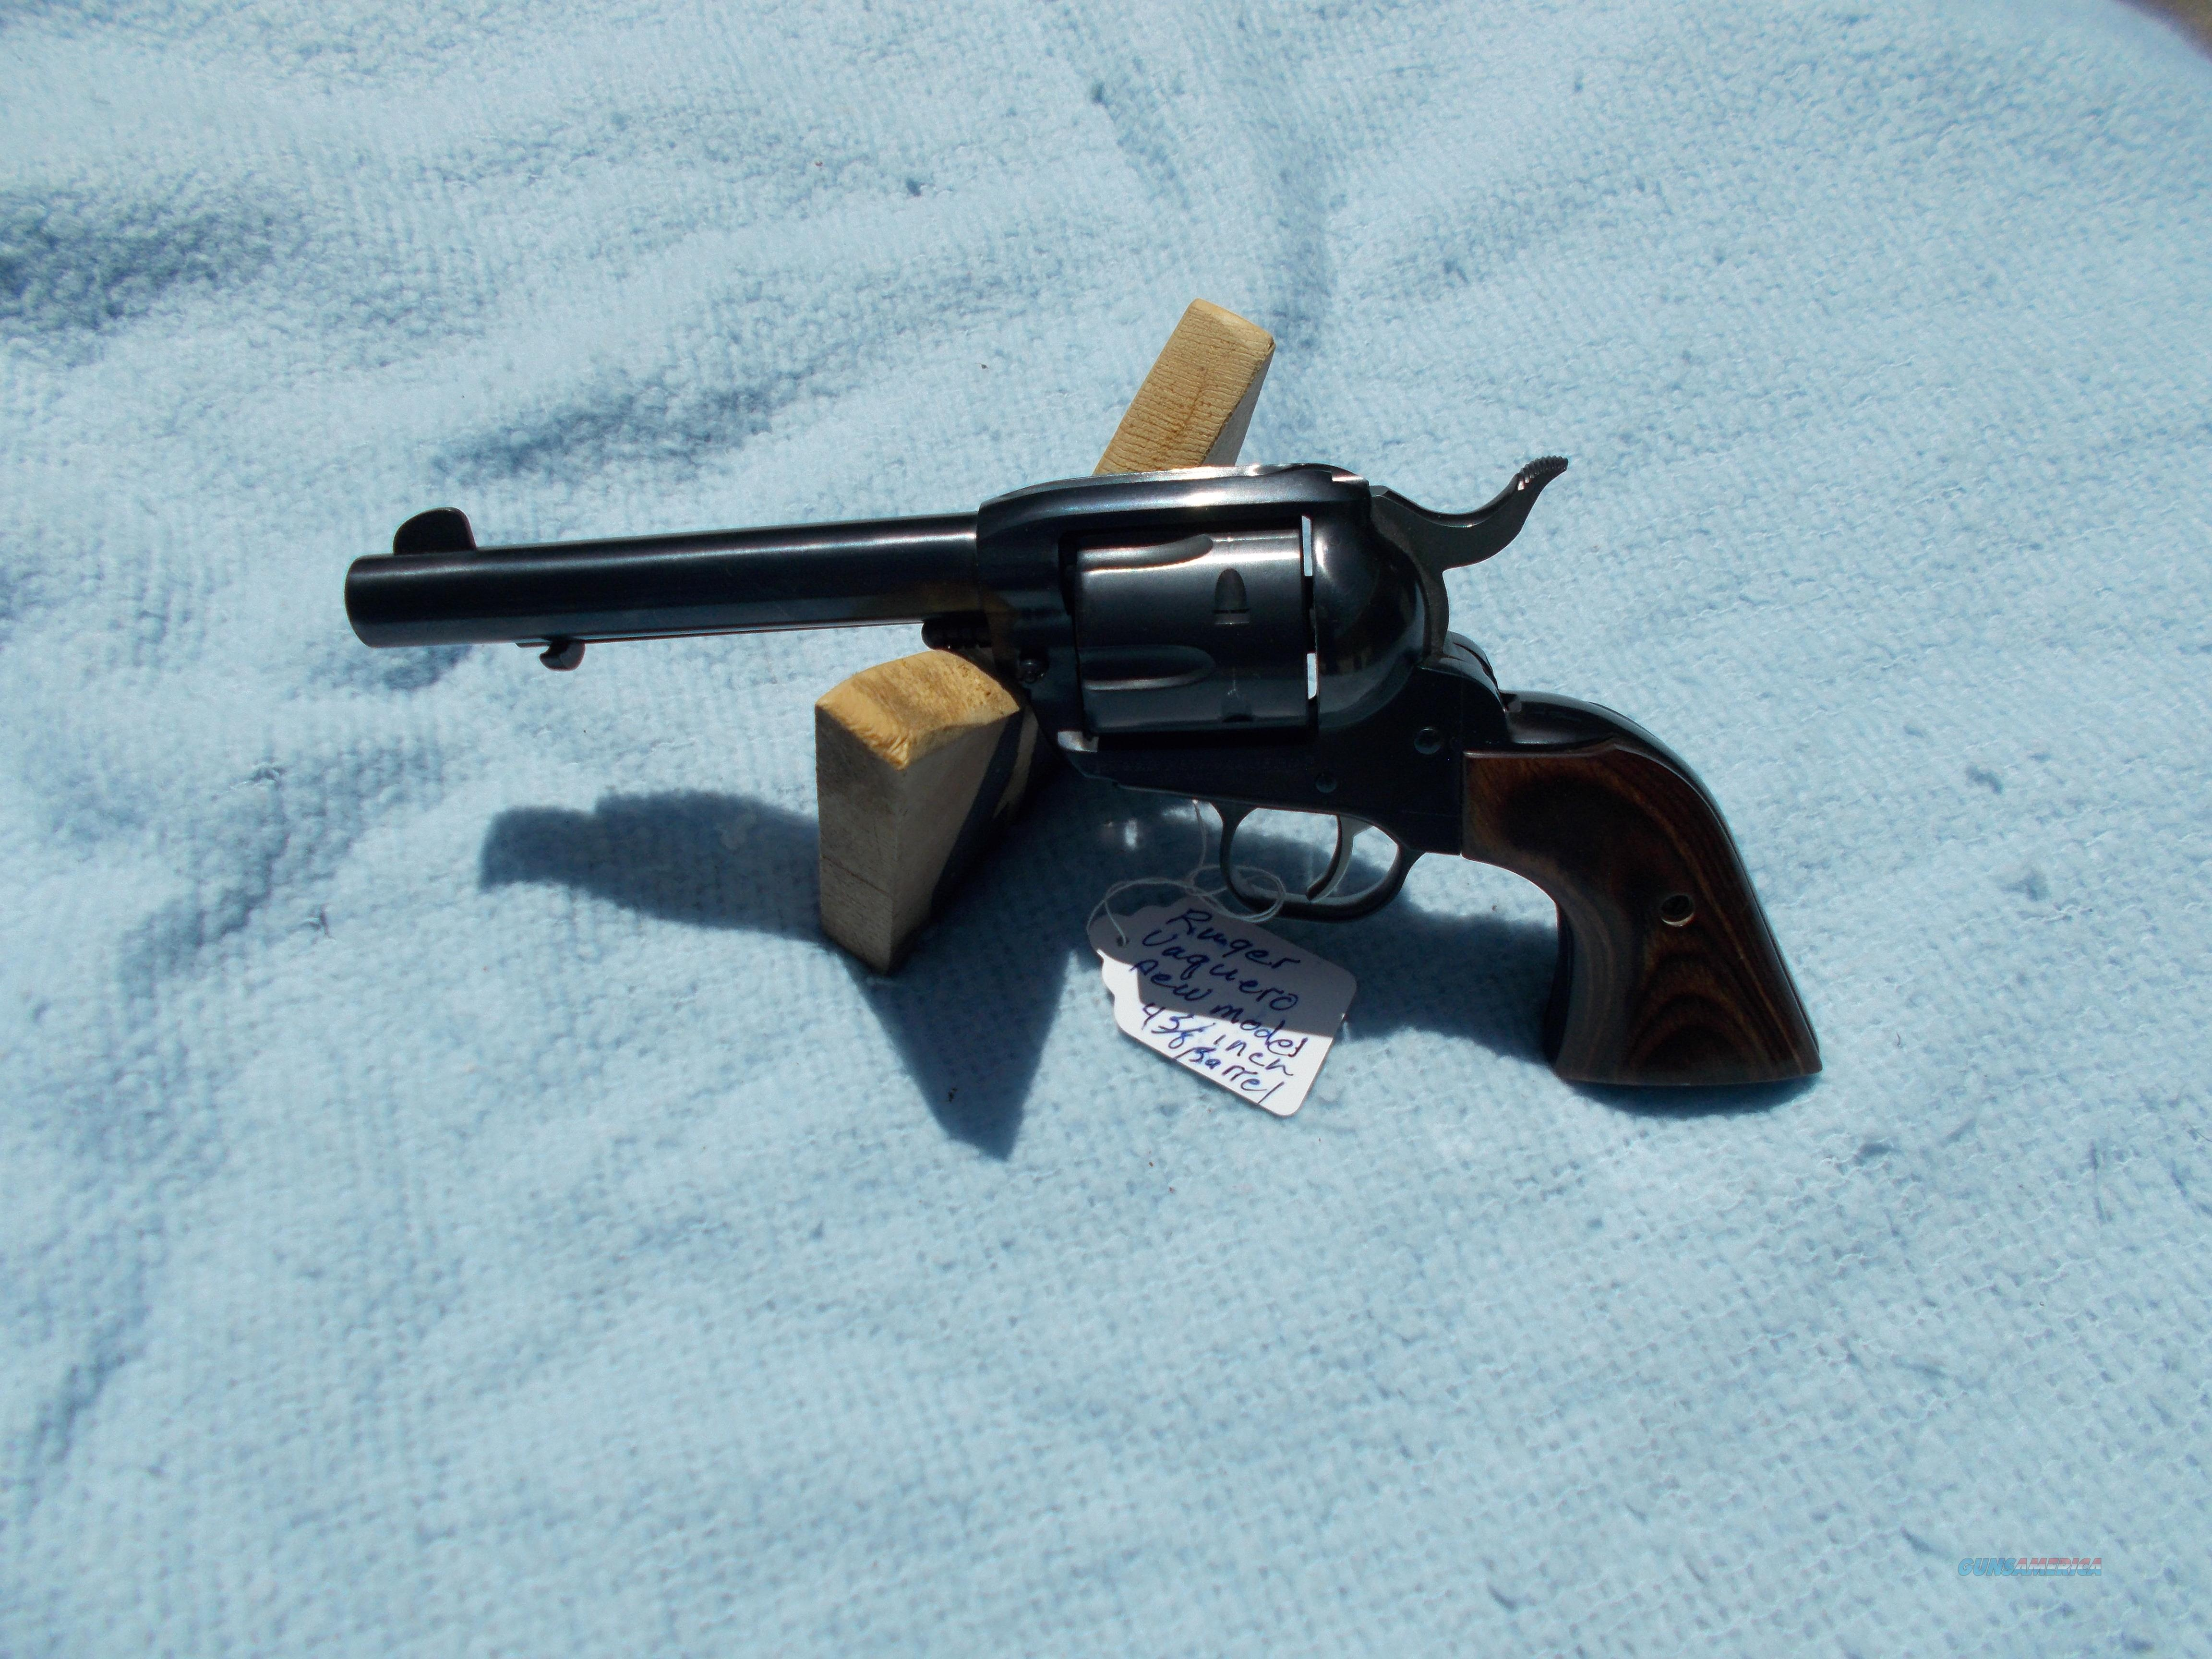 ruger new vaquero 357 magnum  Guns > Pistols > Ruger Single Action Revolvers > Blackhawk Type